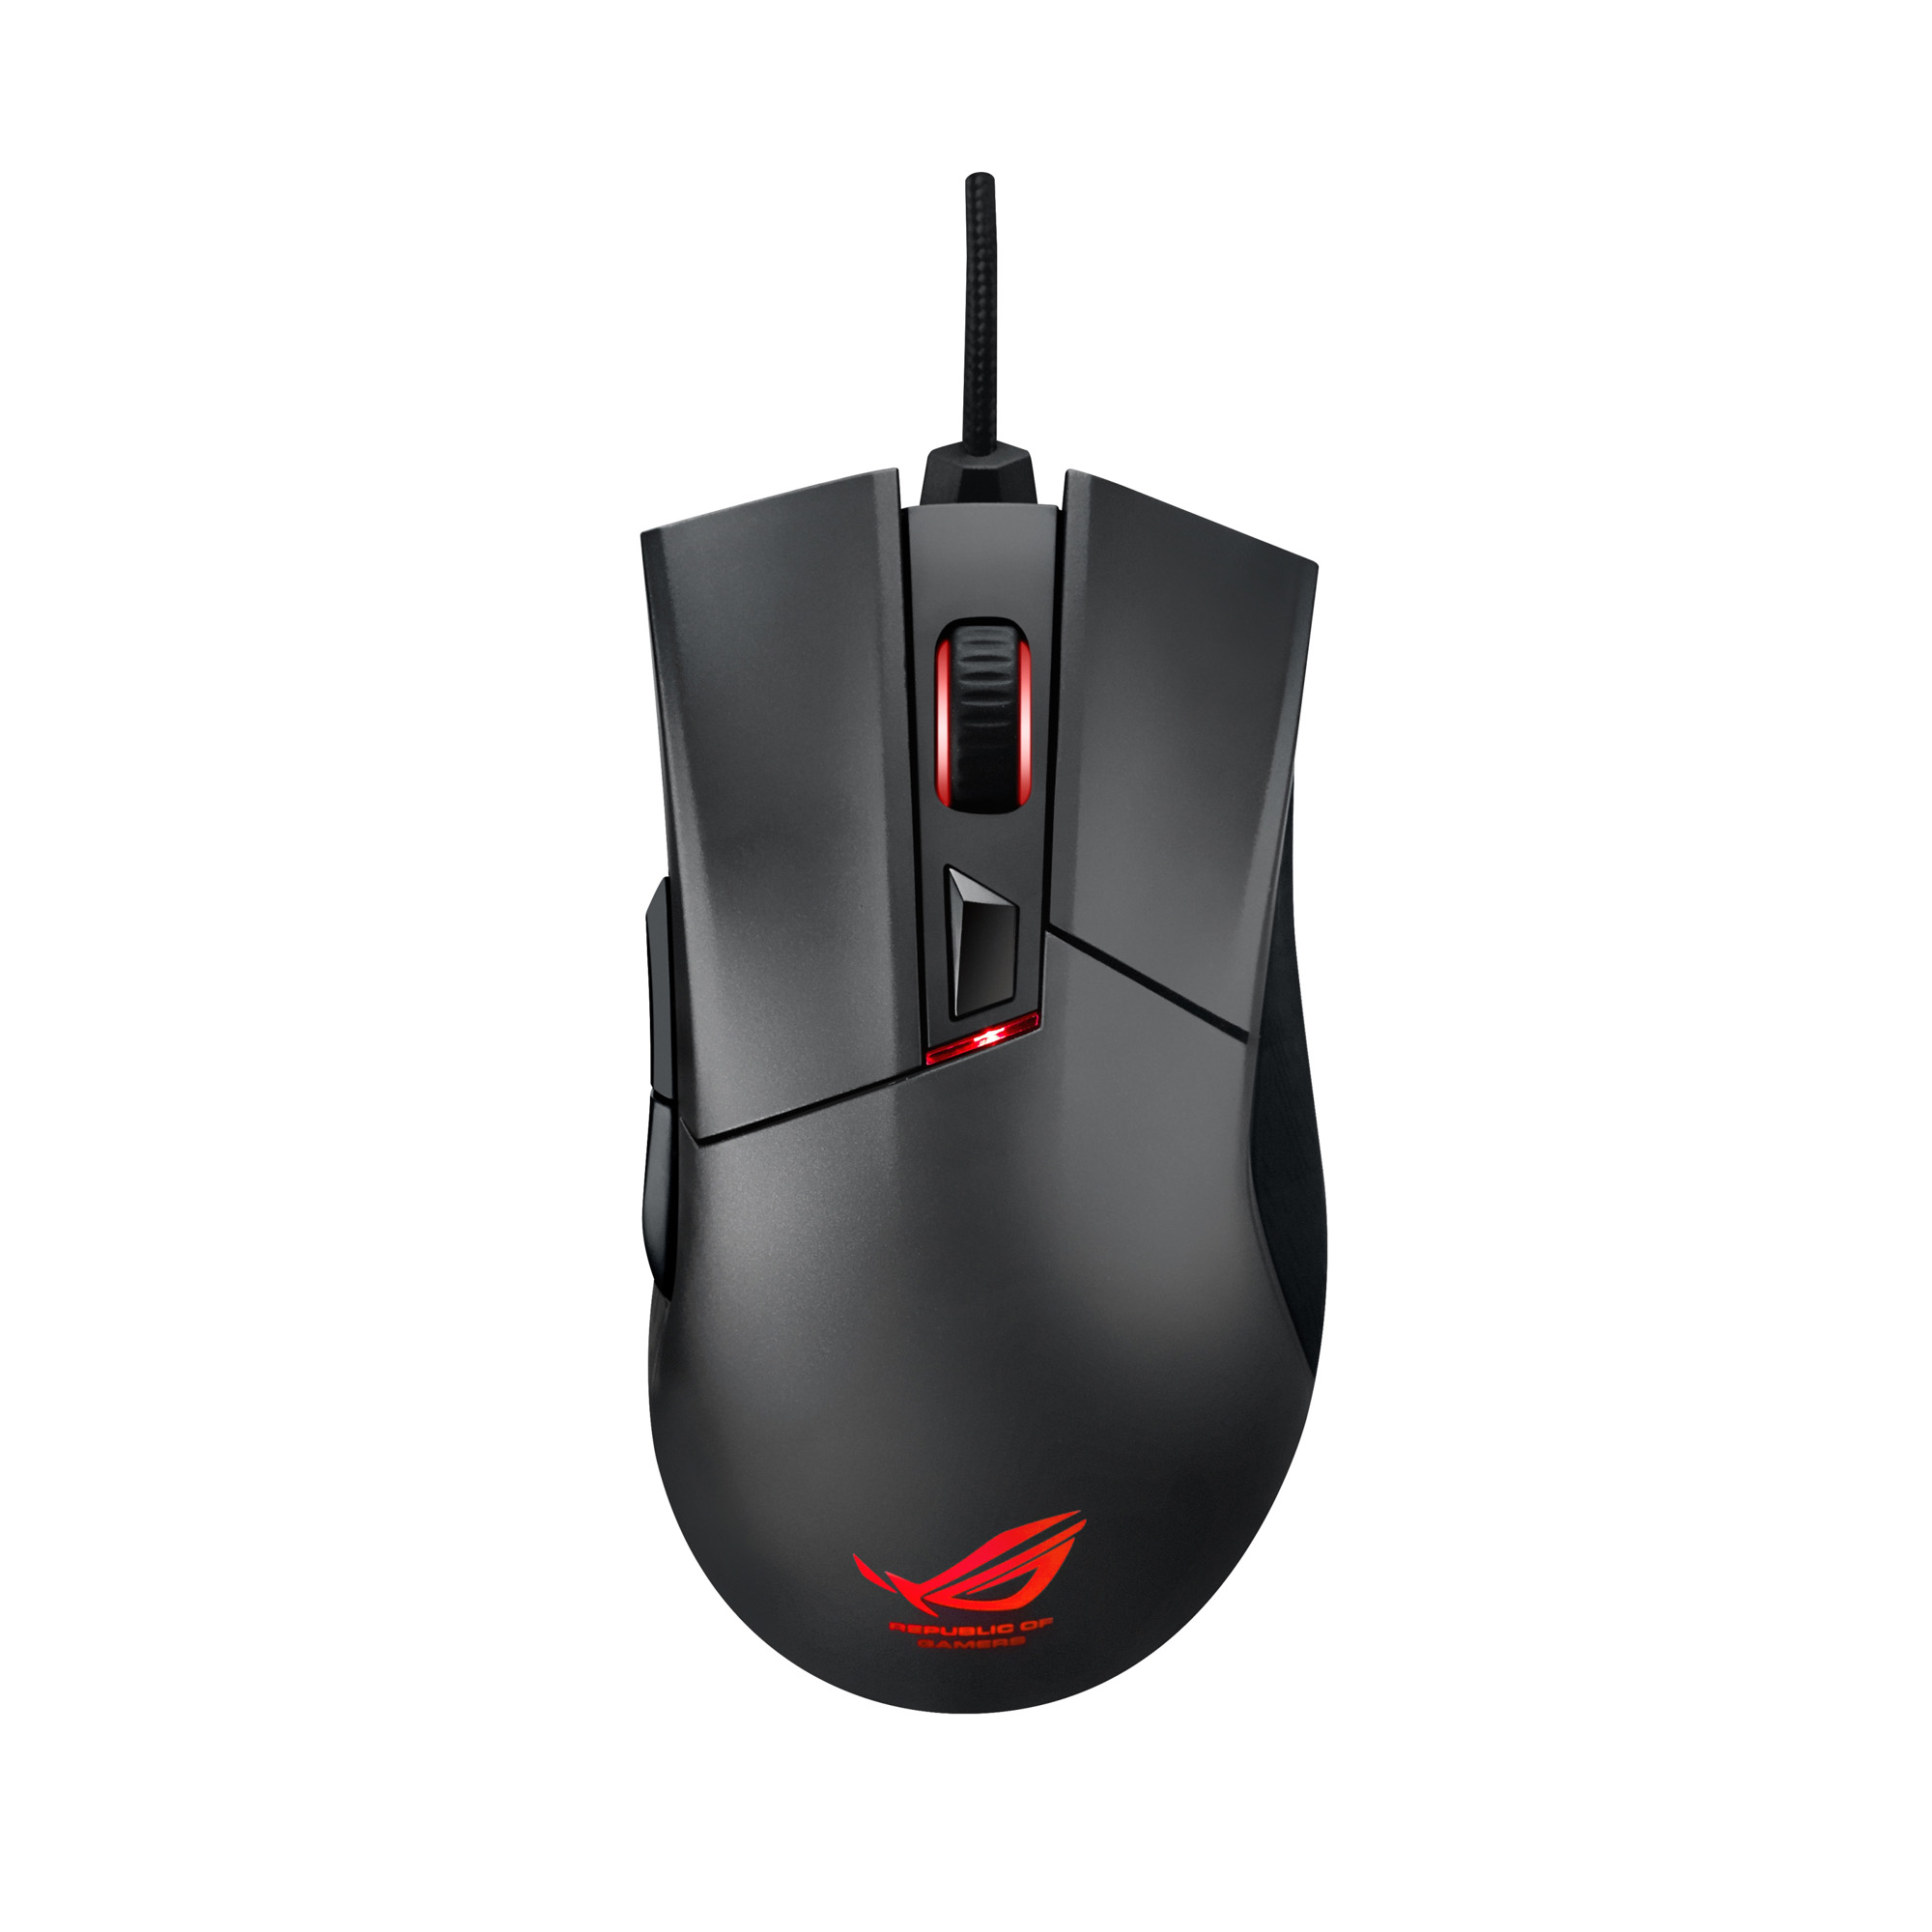 Press Release: ASUS Republic of Gamers Announces Gladius Gaming Mouse | ROG - Republic of Gamers ...